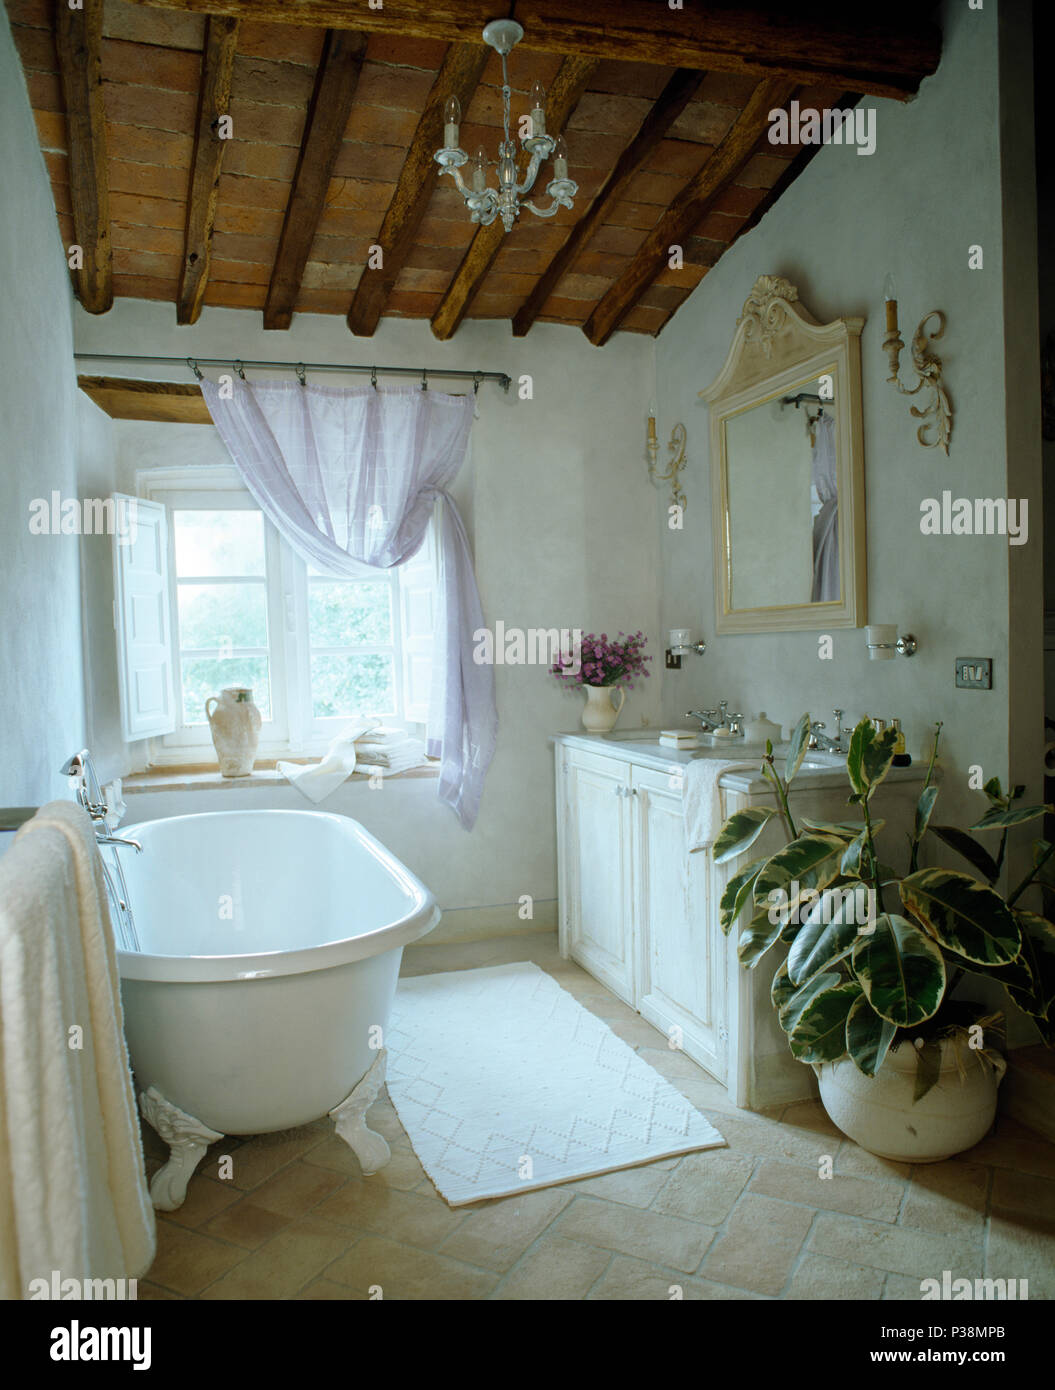 Roll-top bath and large houseplant in Tuscan country bathroom with ...